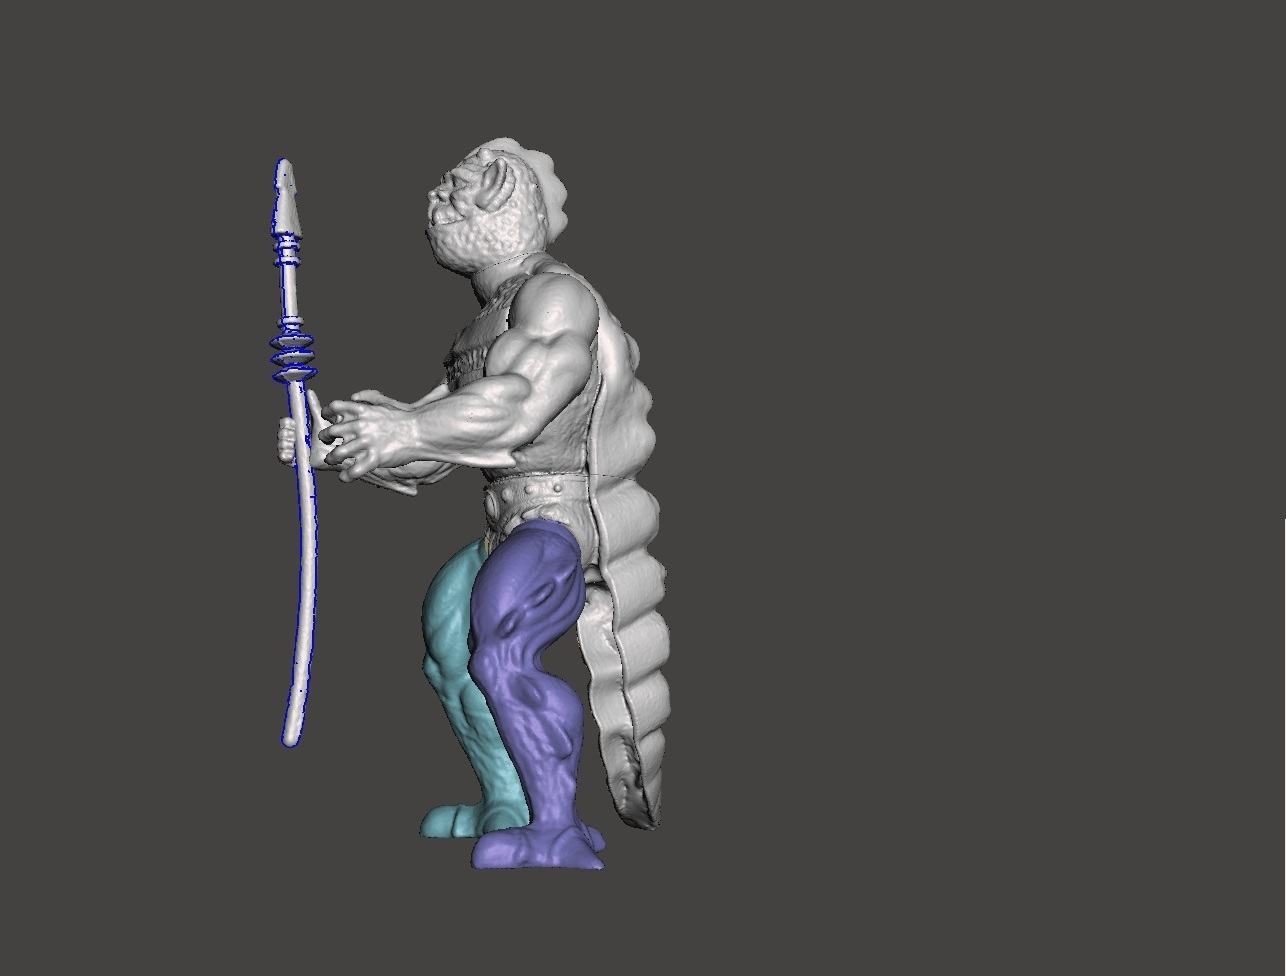 02_whiplash.jpg Download STL file WISPLASH MOTU ACTION FIGURE VINTAGE (COMPLETE) • 3D printable design, VintageToysMG